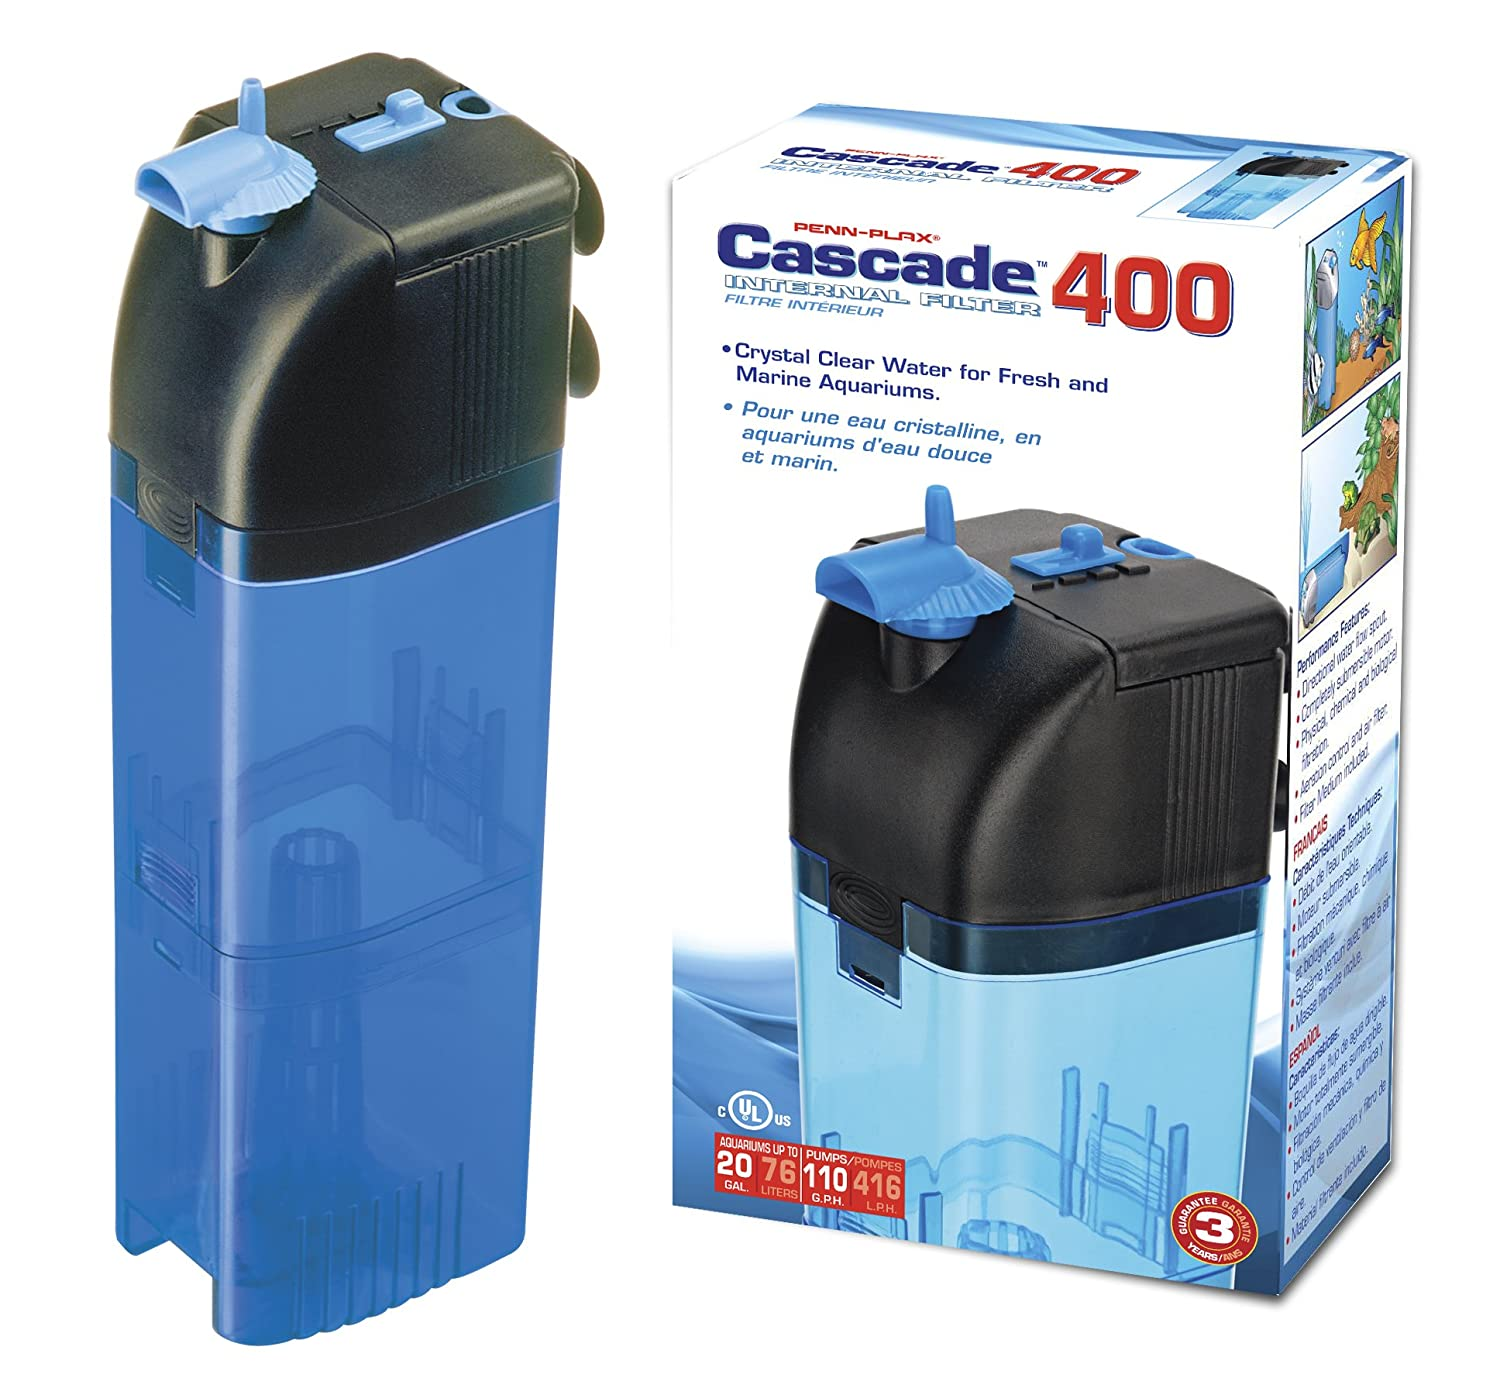 Penn Plax Cascade 400 Internal Filter for Aquariums by Penn-Plax B0002DJLEQ